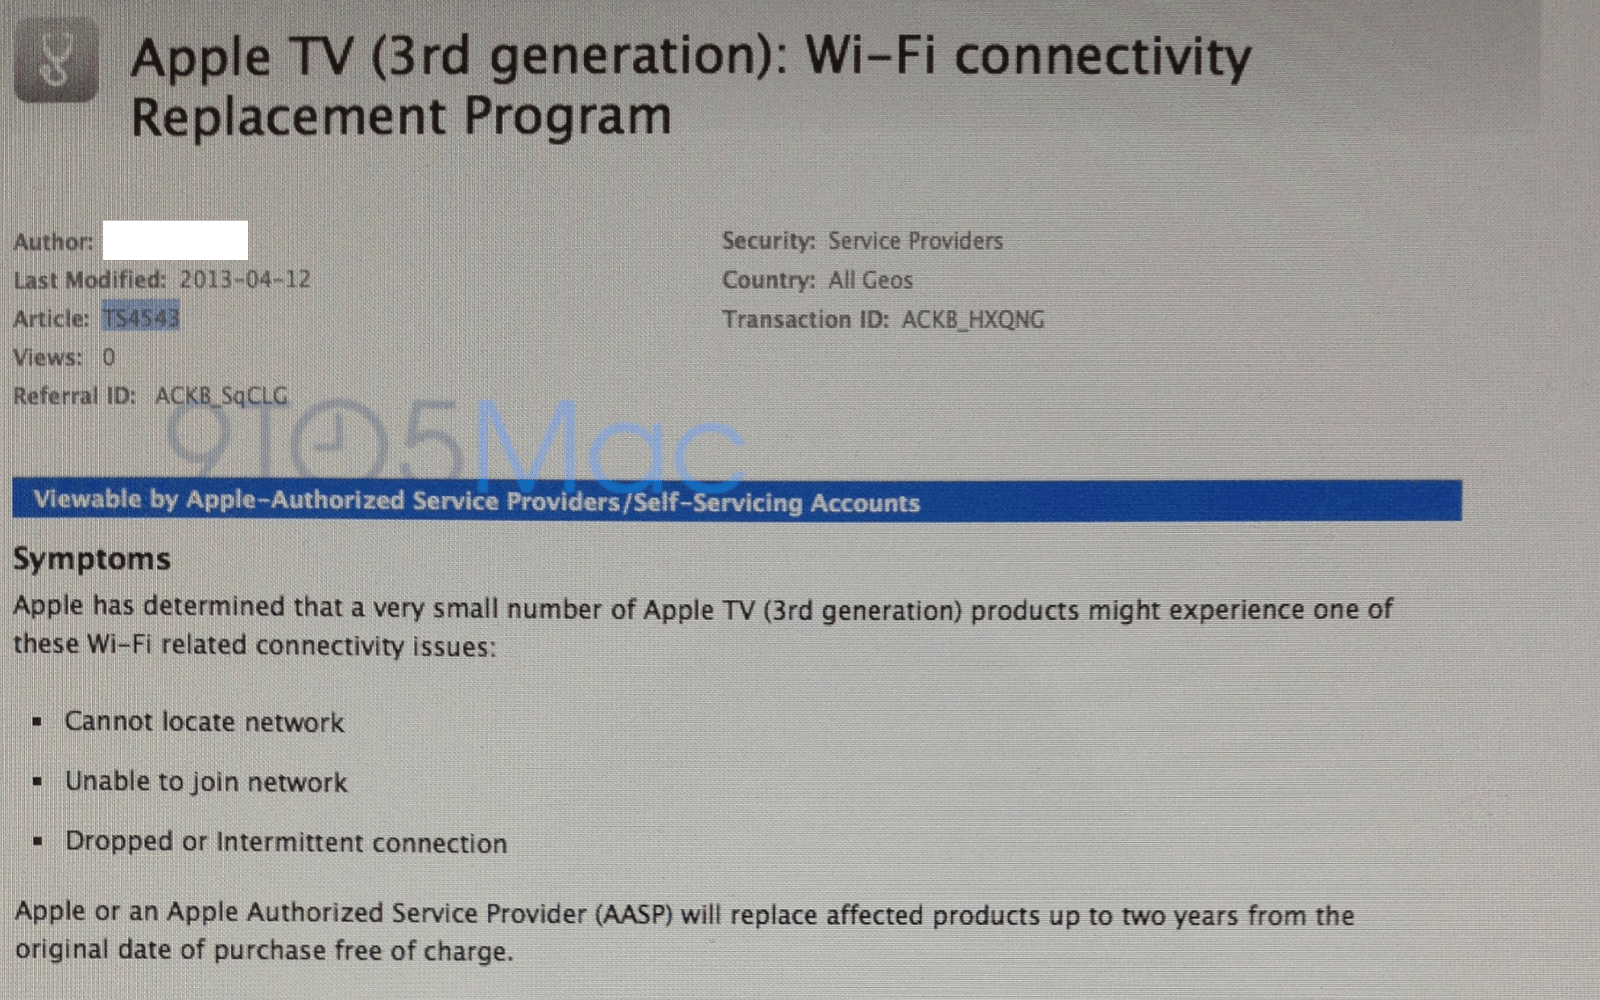 Apple says small number of Apple TVs have WiFi issues, opens